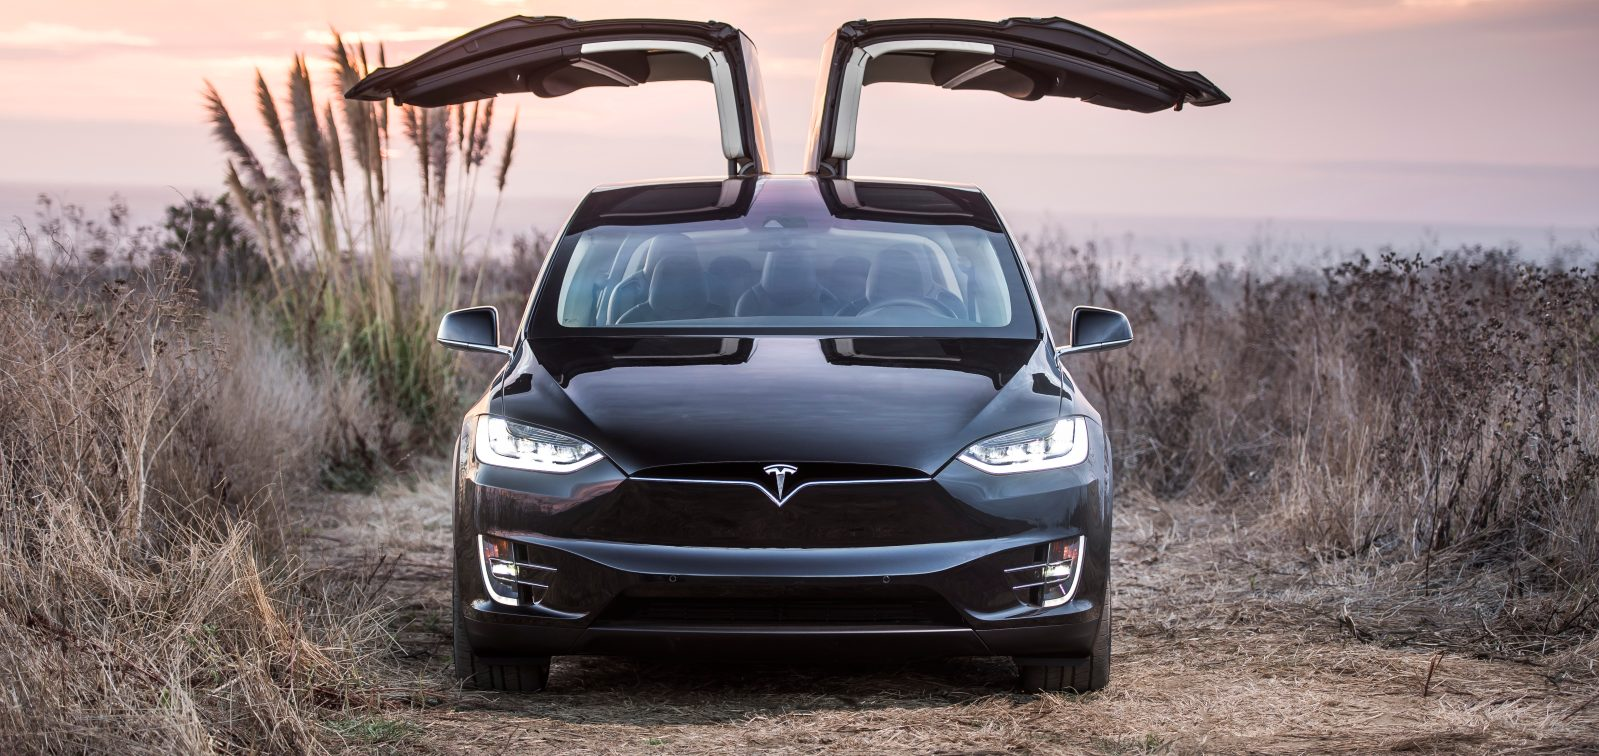 The Tesla Model X Is First All Electric Suv And Second Vehicle Released On S Generation Platform